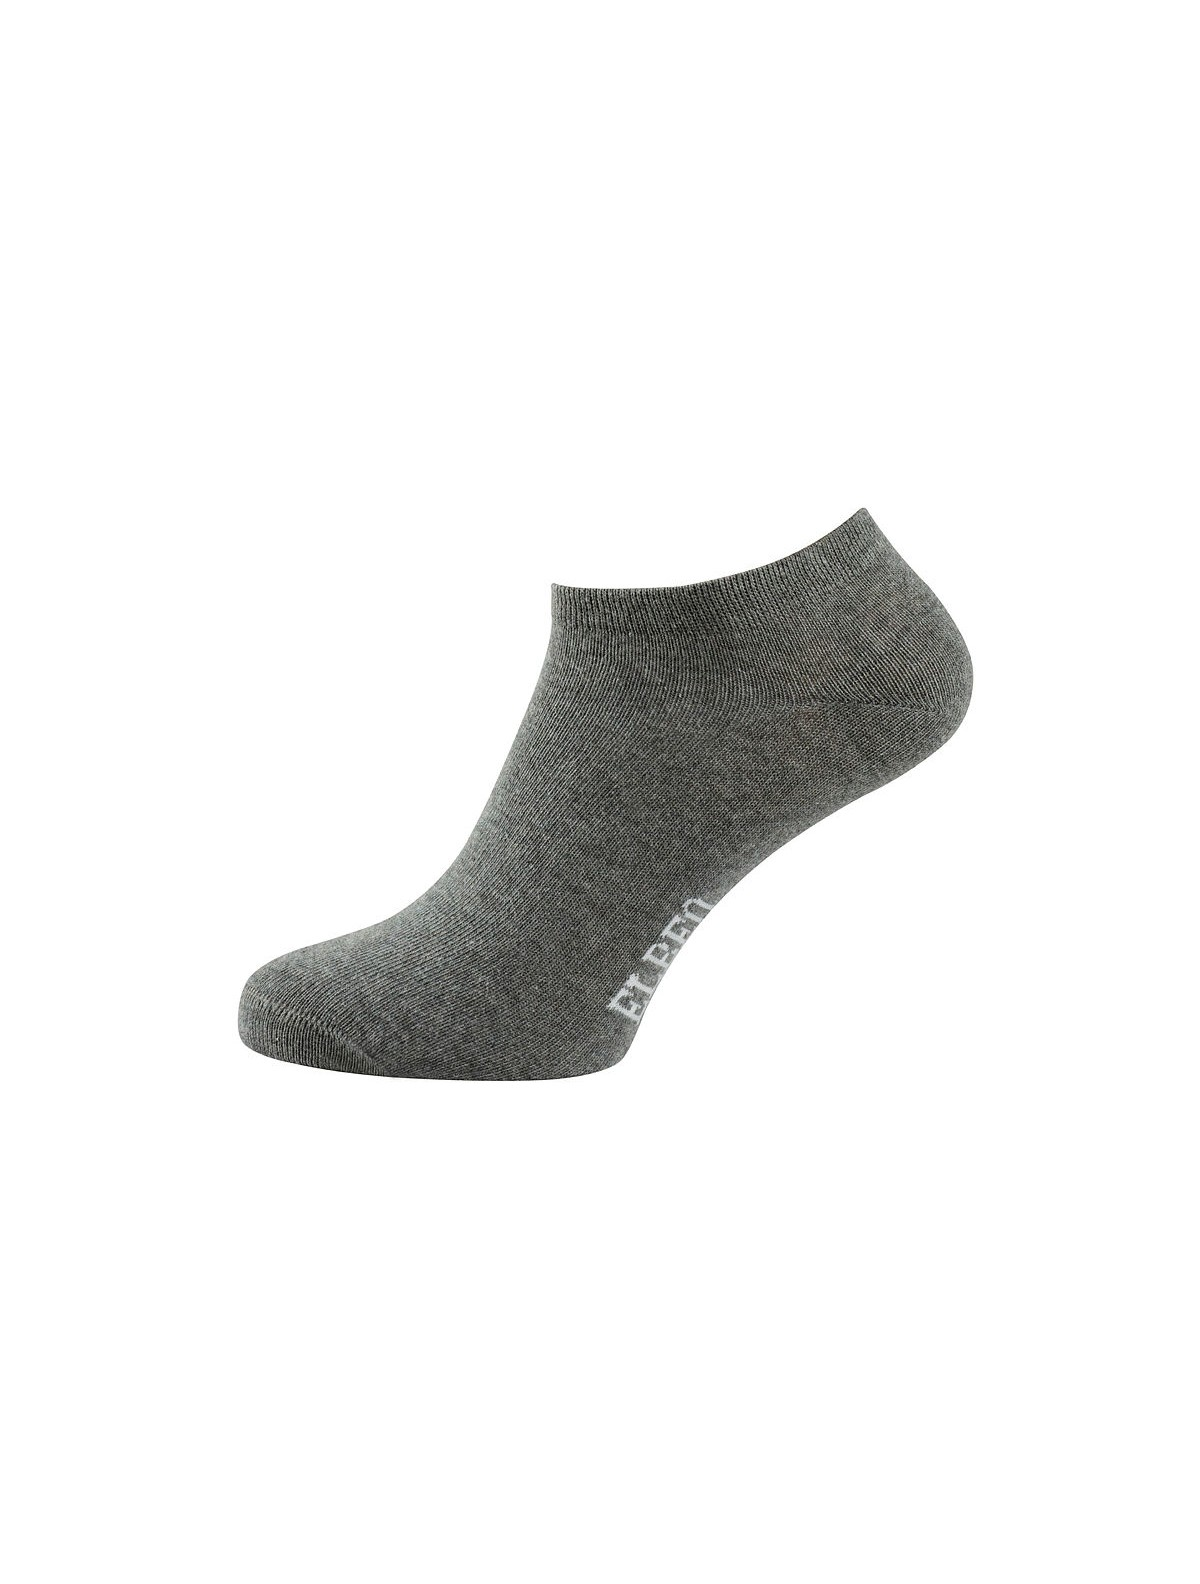 Clearance Manchester Great Sale Free Shipping Outlet Locations Mens Ankle Socks Elbeo Outlet The Cheapest 100% Original Sale Online Pick A Best Cheap Price Bm1bOW8